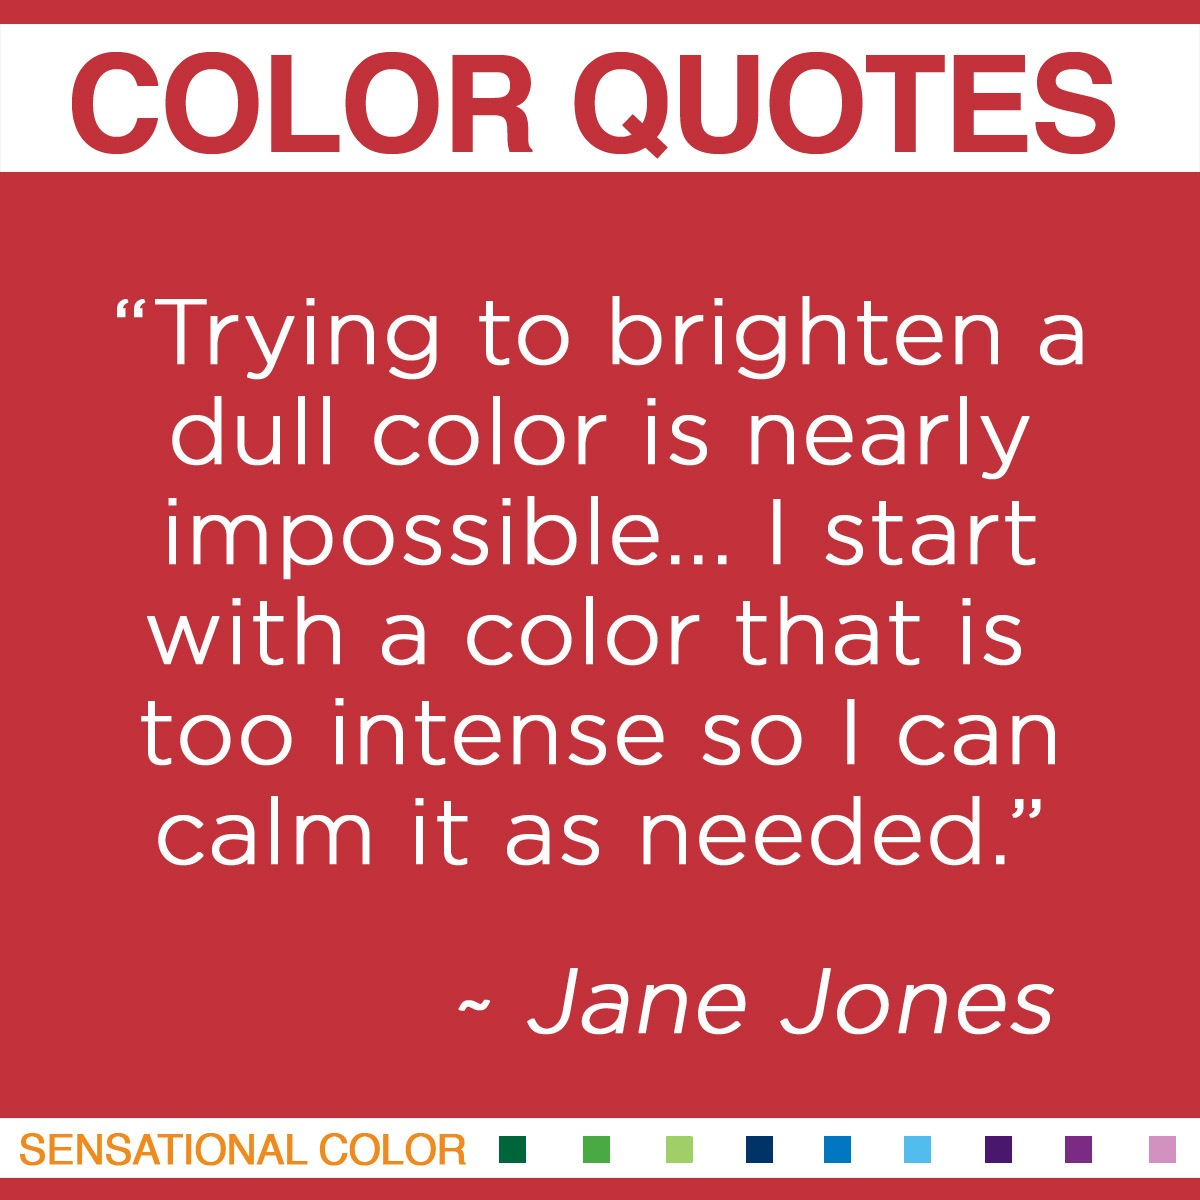 """Trying to brighten a dull color is nearly impossible… I start with a color that is too intense so I can calm it as needed."" - Jane Jones"